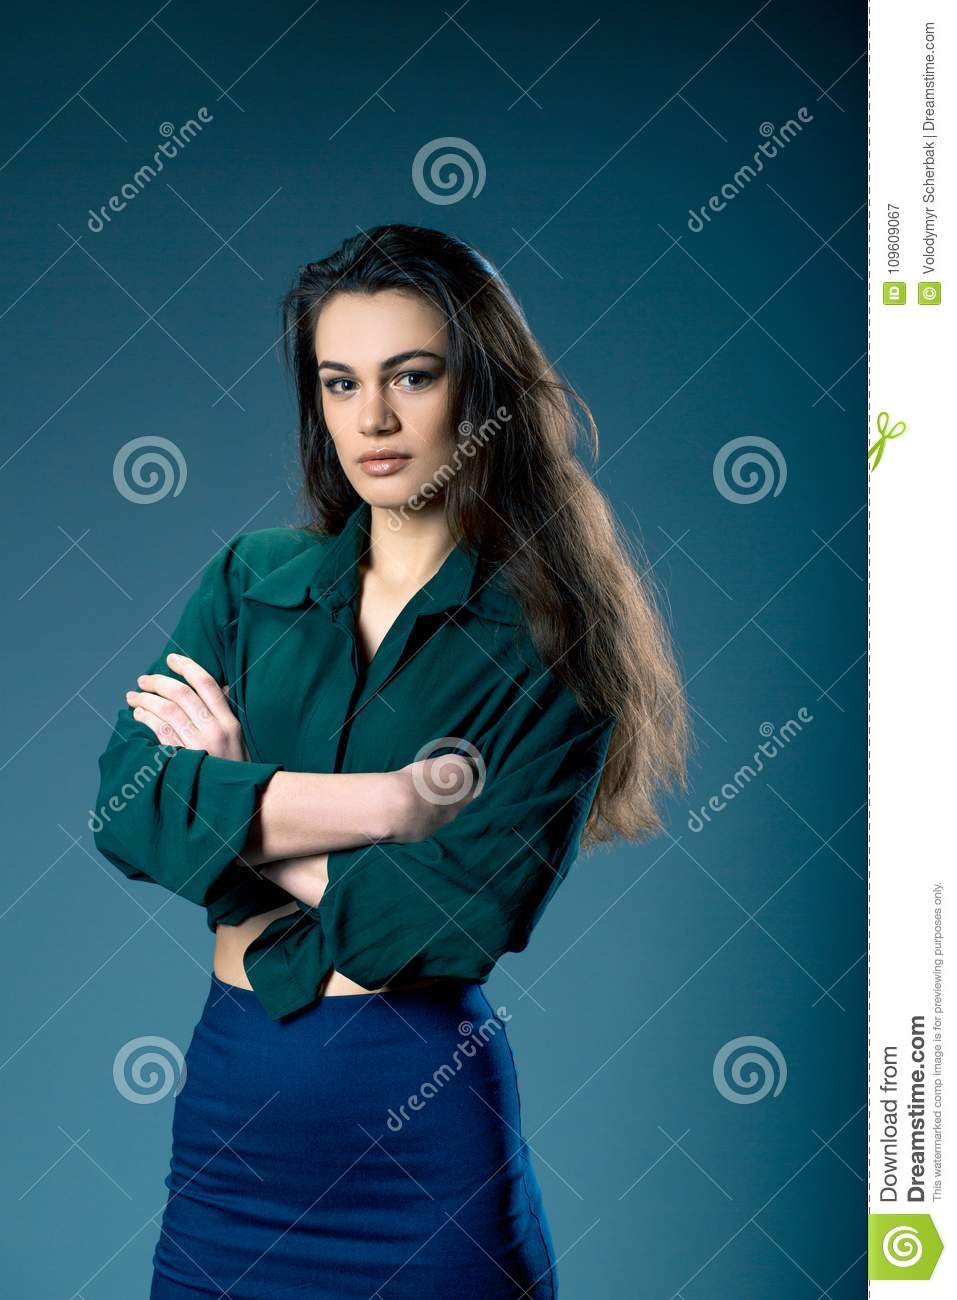 Portrait of young sexy dark-haired model wearing skinny